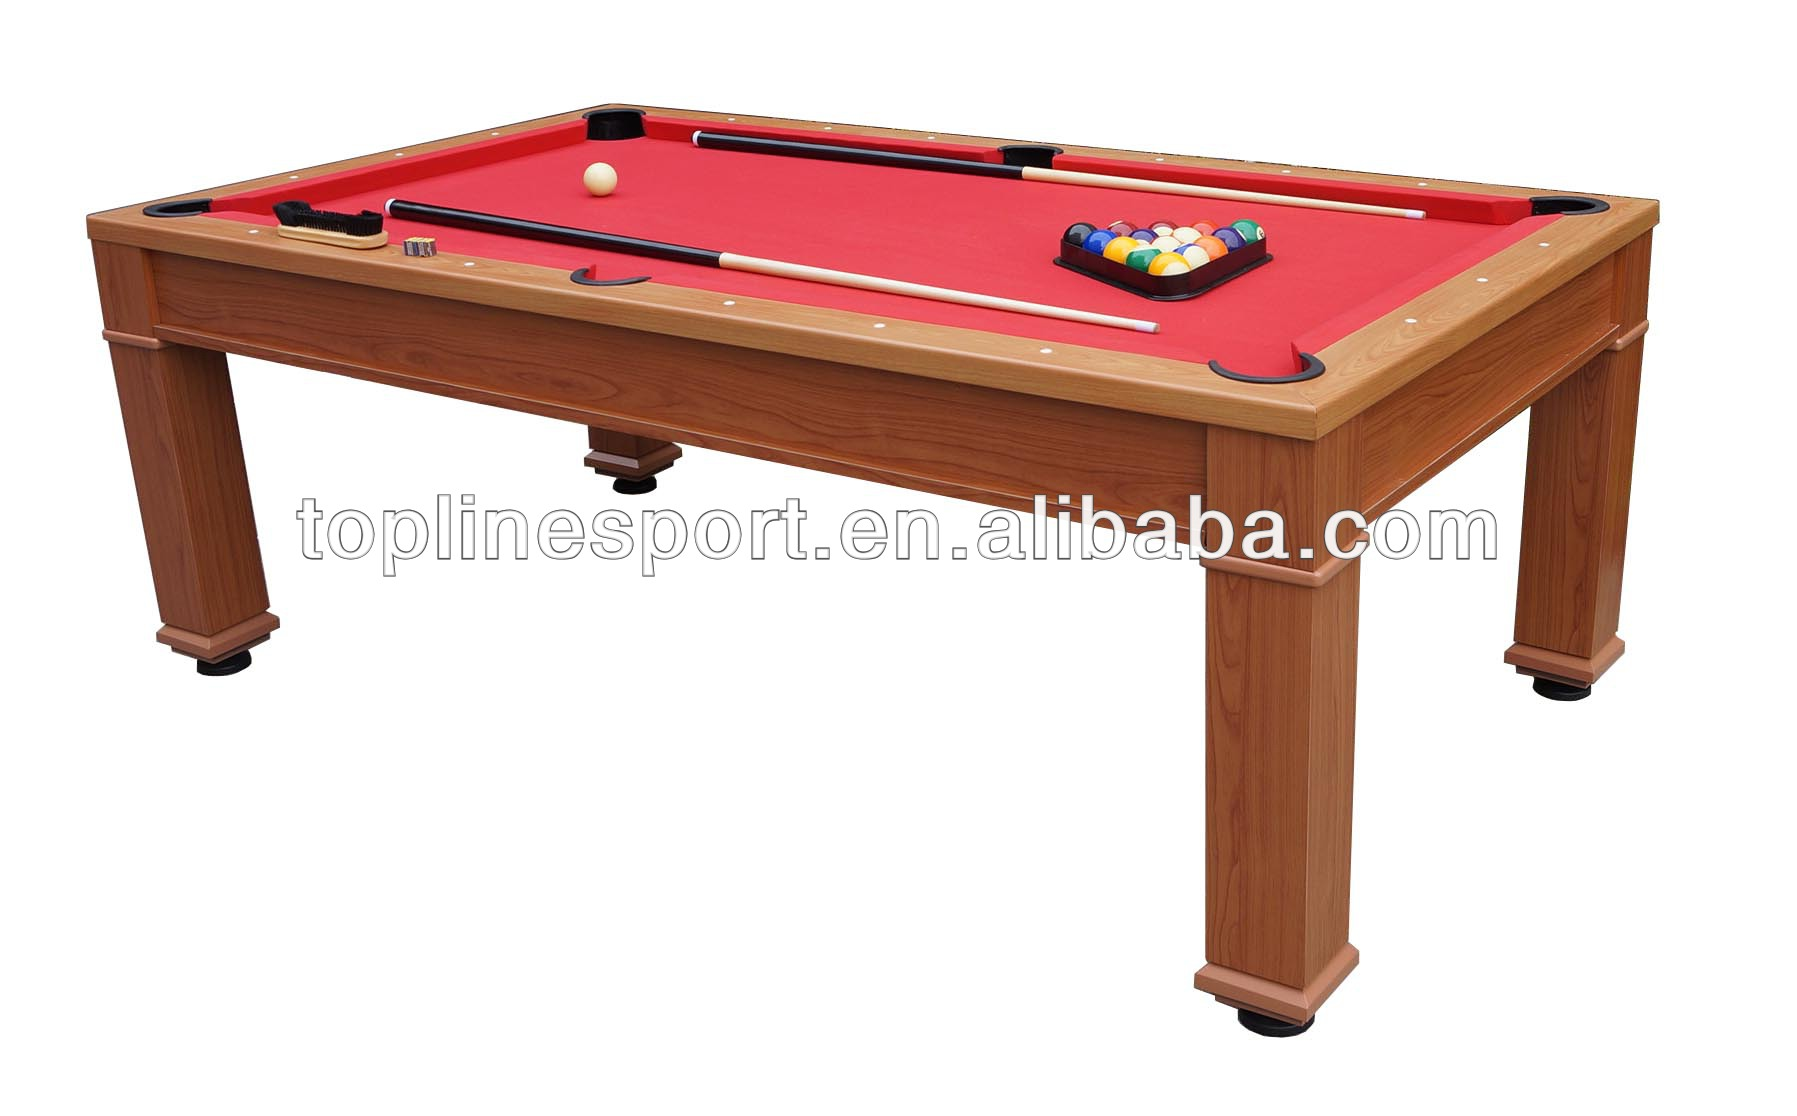 7ft High end 3 in 1 Dining Pool Table T58403